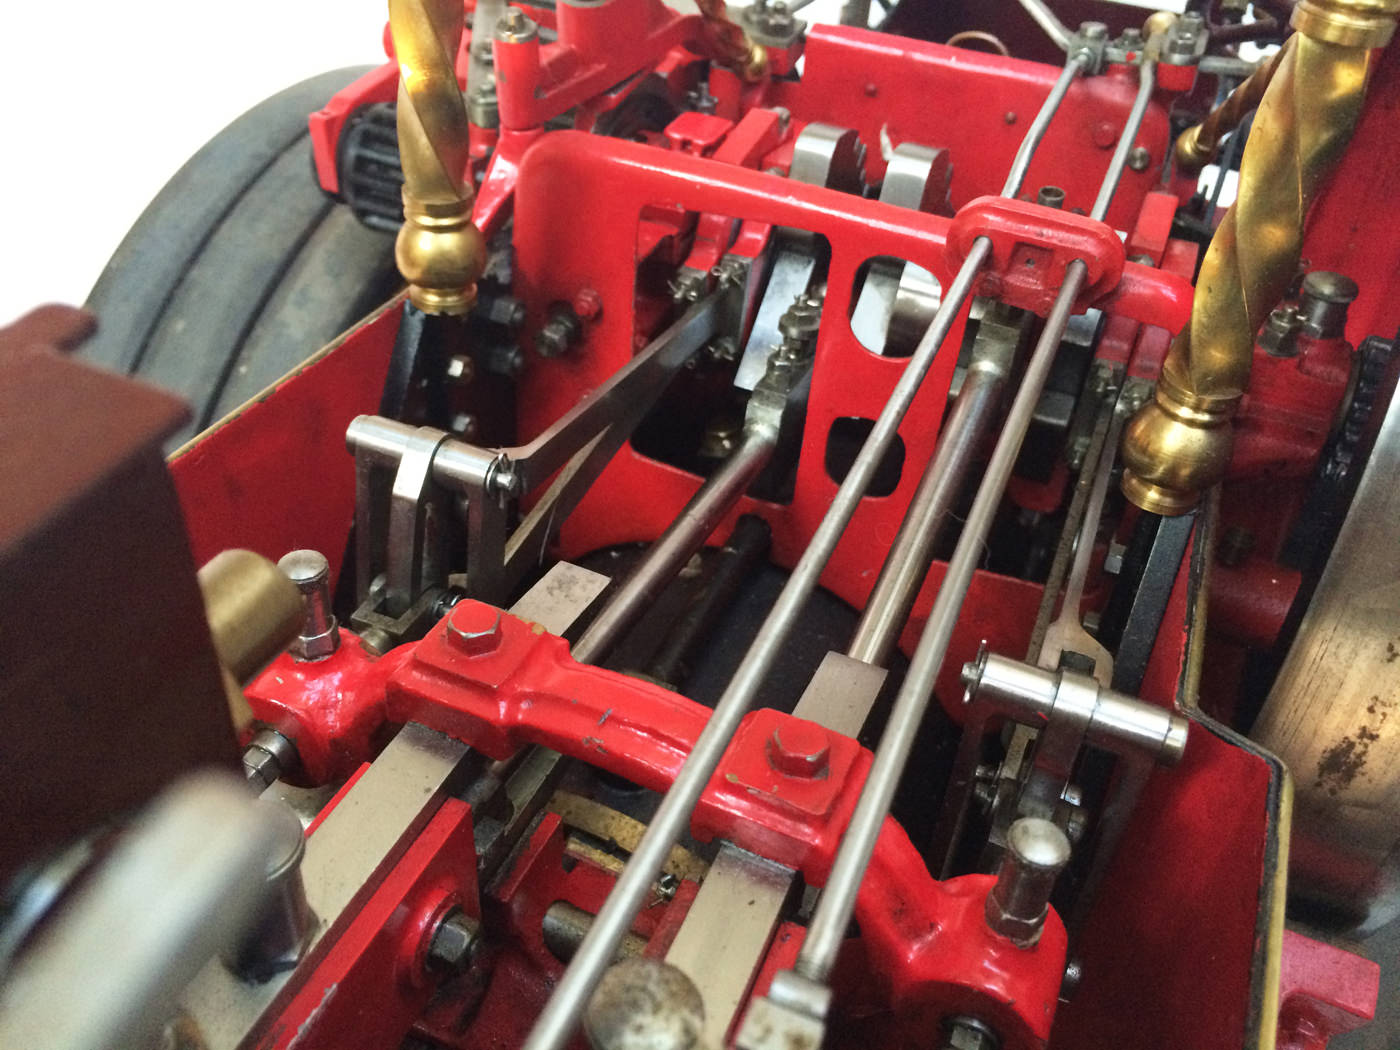 test 2 scale Burrell Scenic Showmans Engine Thetford Town Live Steam model for sale 08